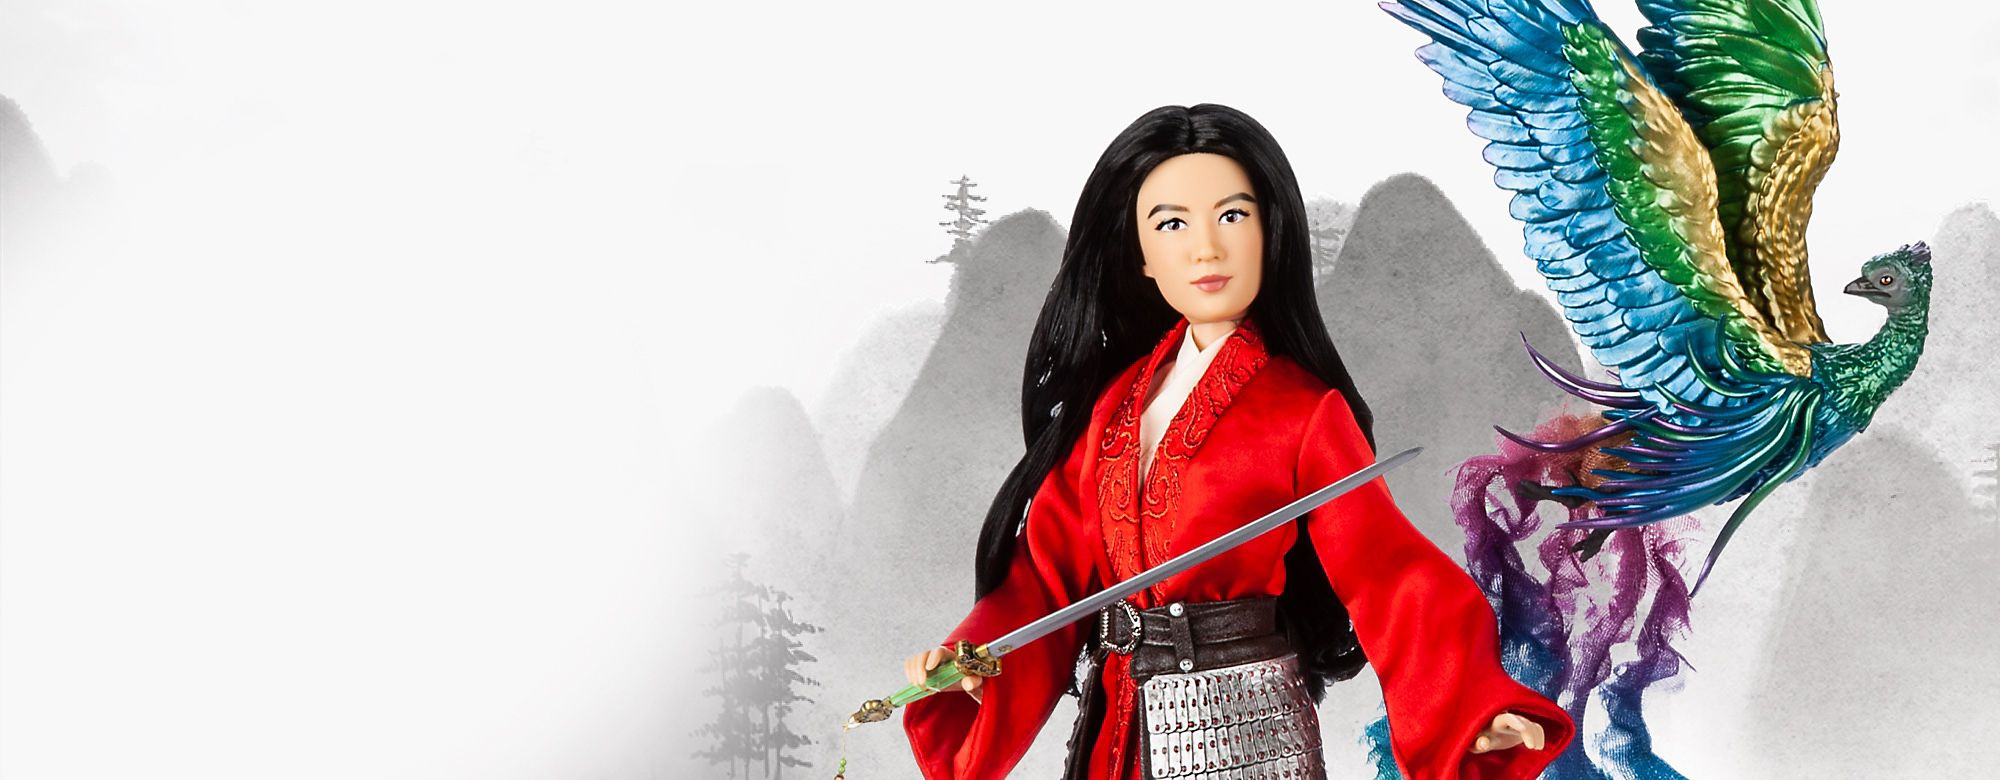 Disney Store Poupées Limited Edition 17'' (depuis 2009) - Page 36 32877_coming_soon_page_march_mulan_tb?$tb$